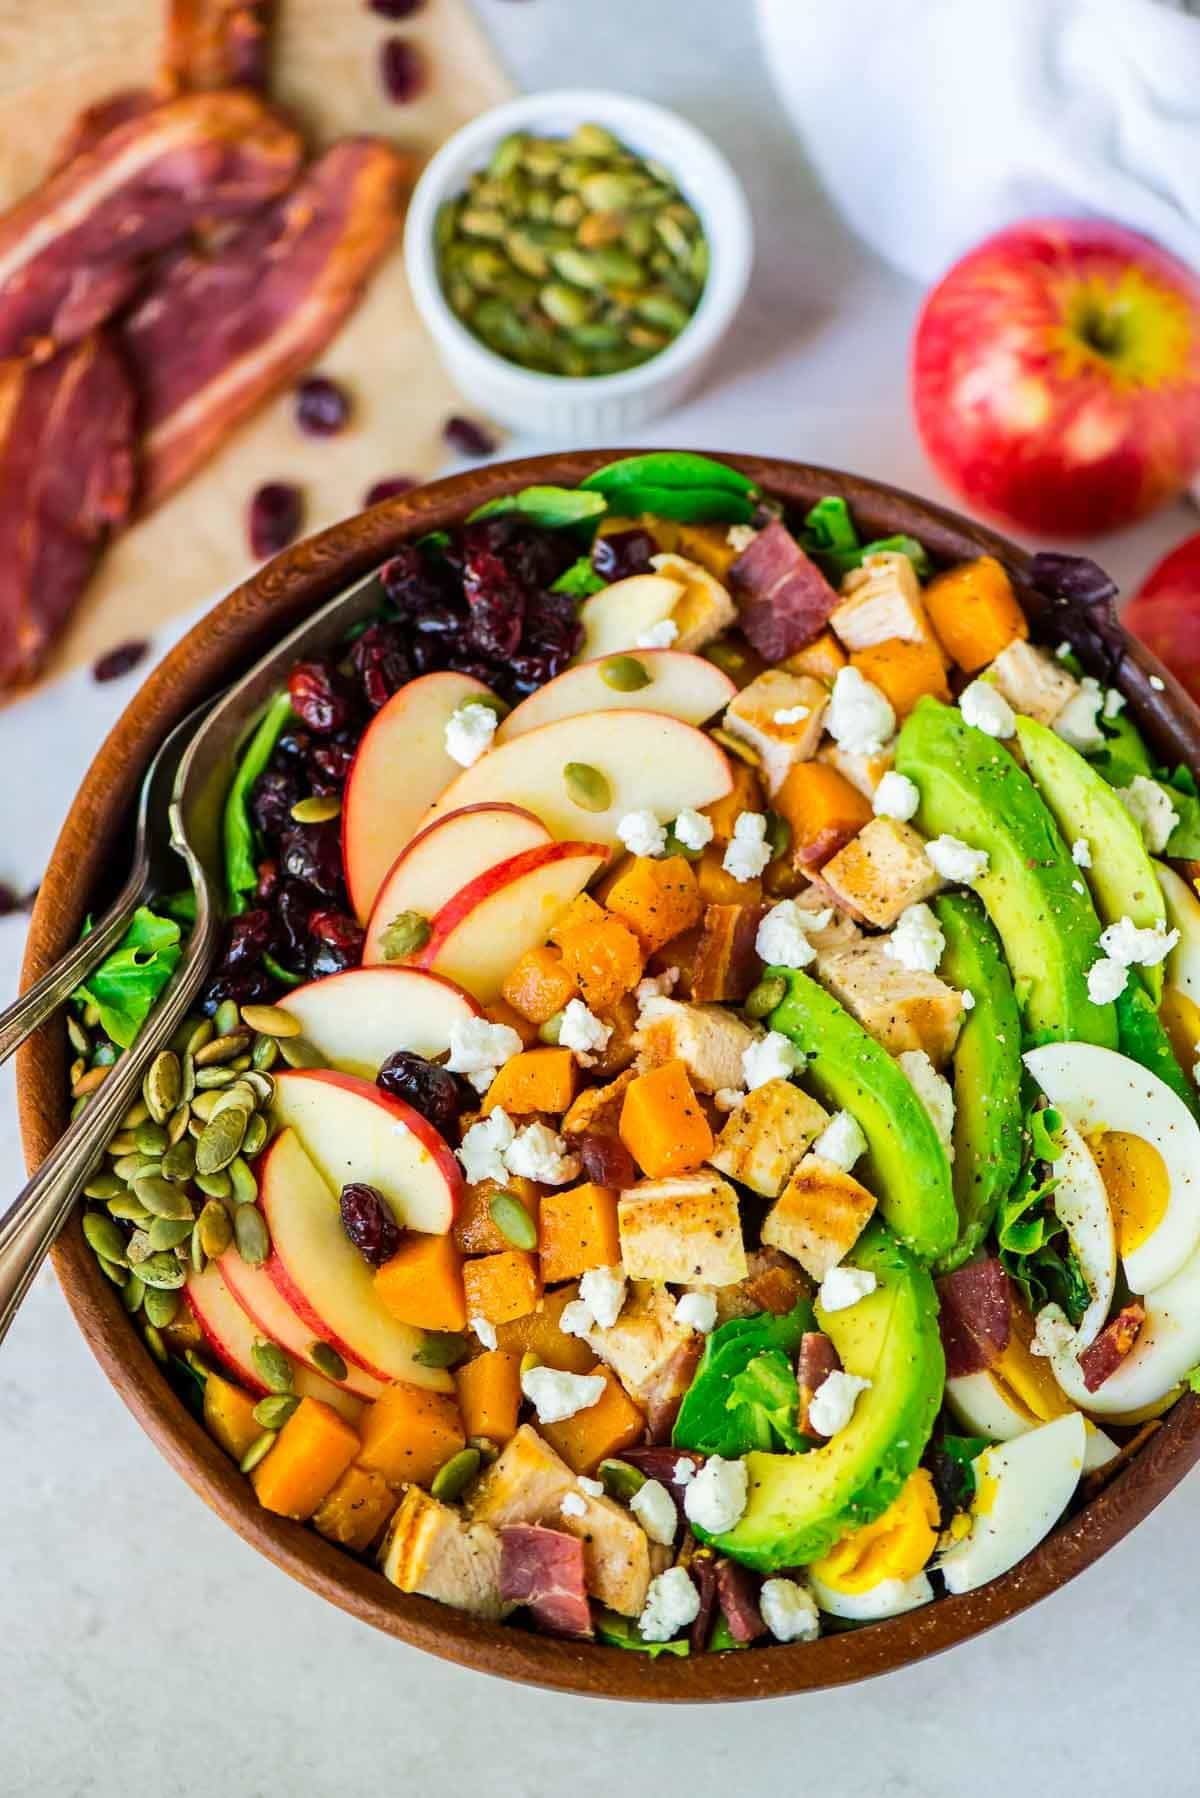 Harvest Cobb Salad with Butternut Squash Apples and Cranberries